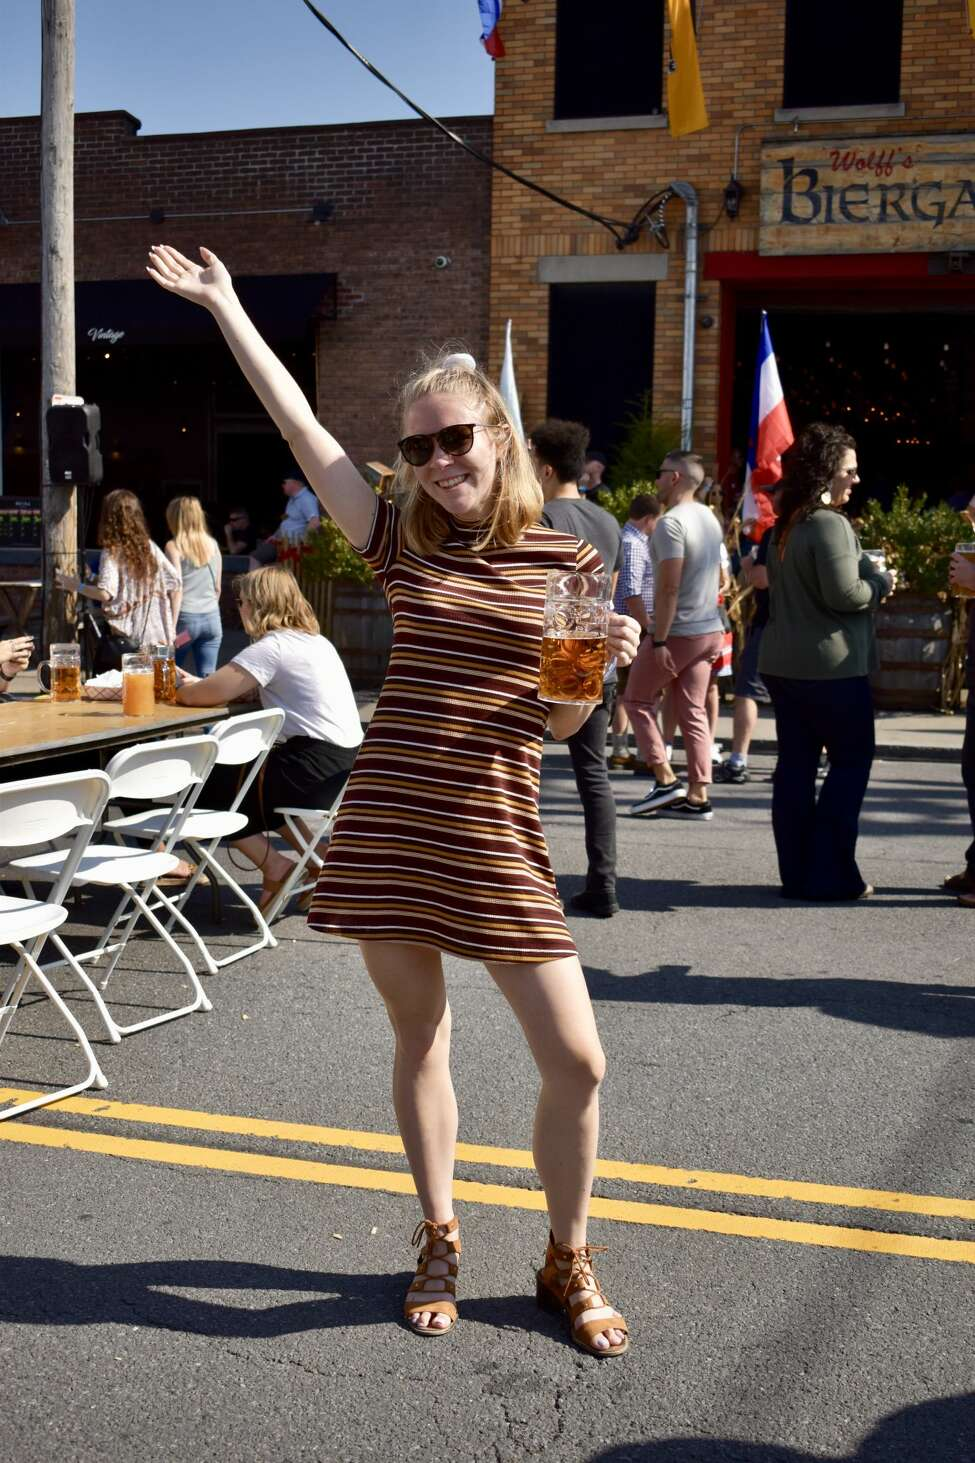 Were you Seen at the North Albany Oktoberfest at Wolff's Biergarten in Albany on Sept. 28, 2019?